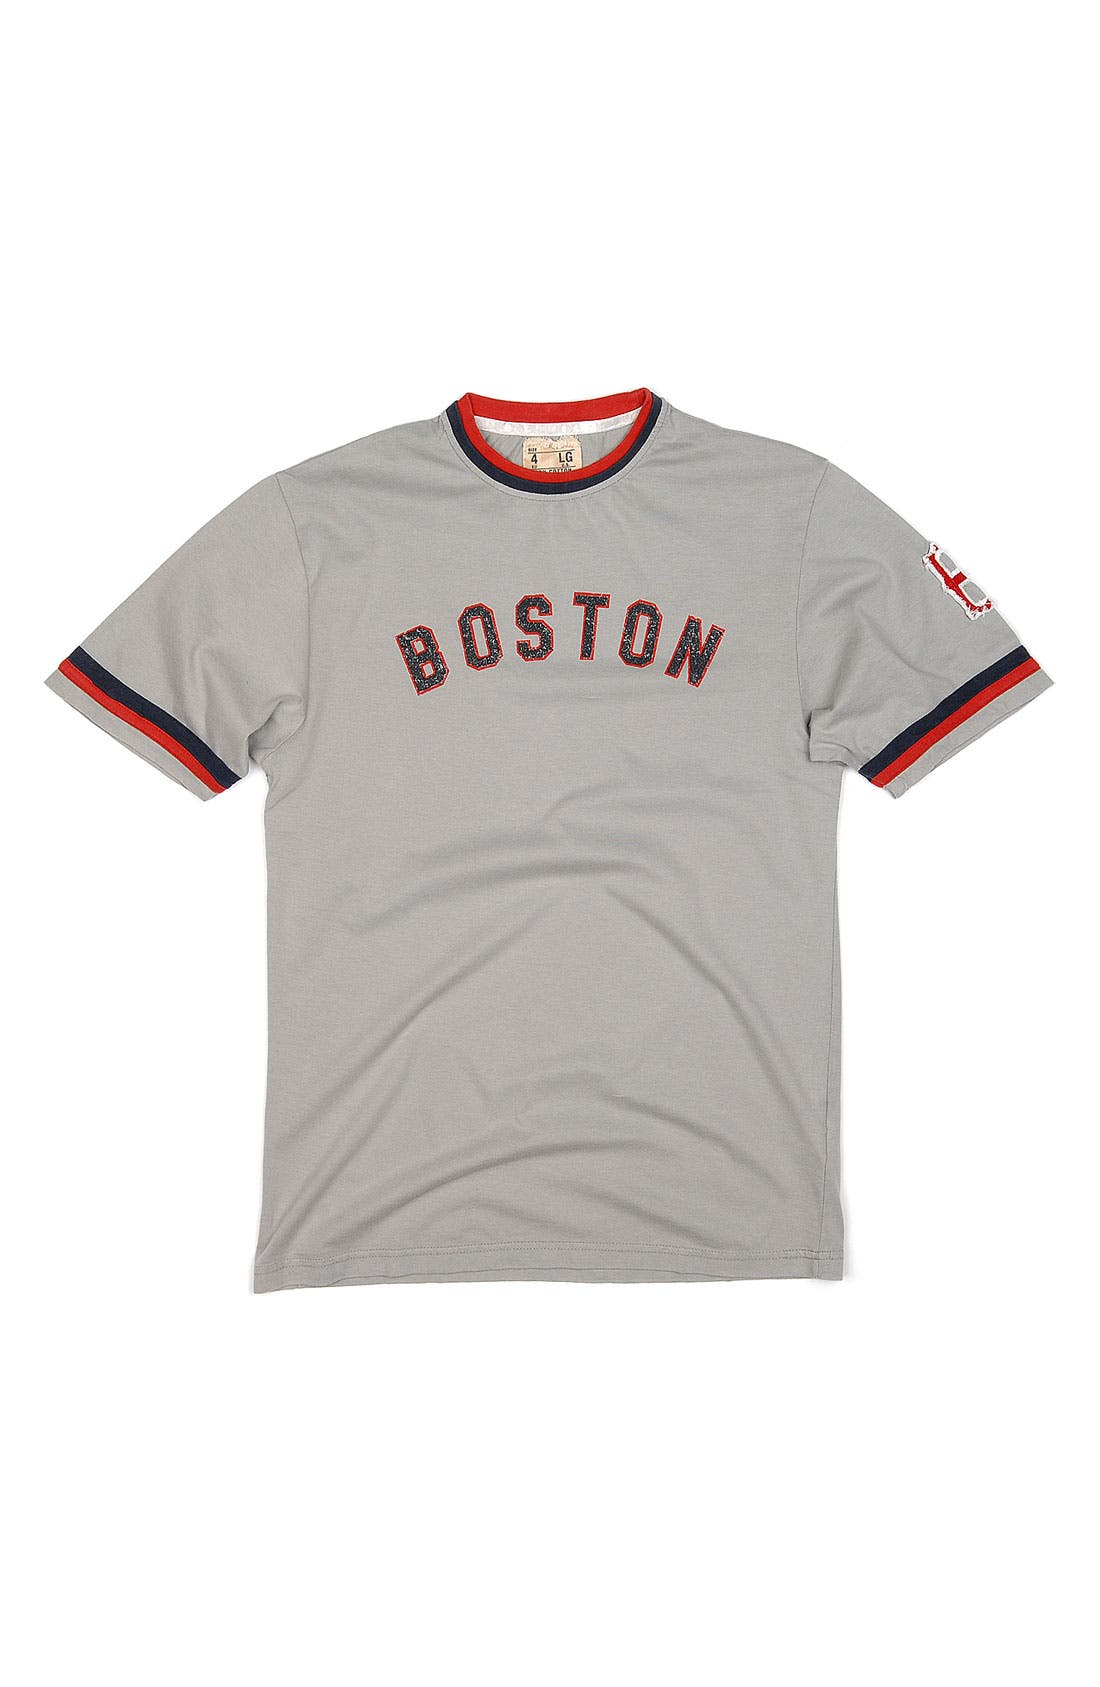 Alternate Image 1 Selected - Red Jacket 'Boston Red Sox' Trim Fit Ringer T-Shirt (Men)